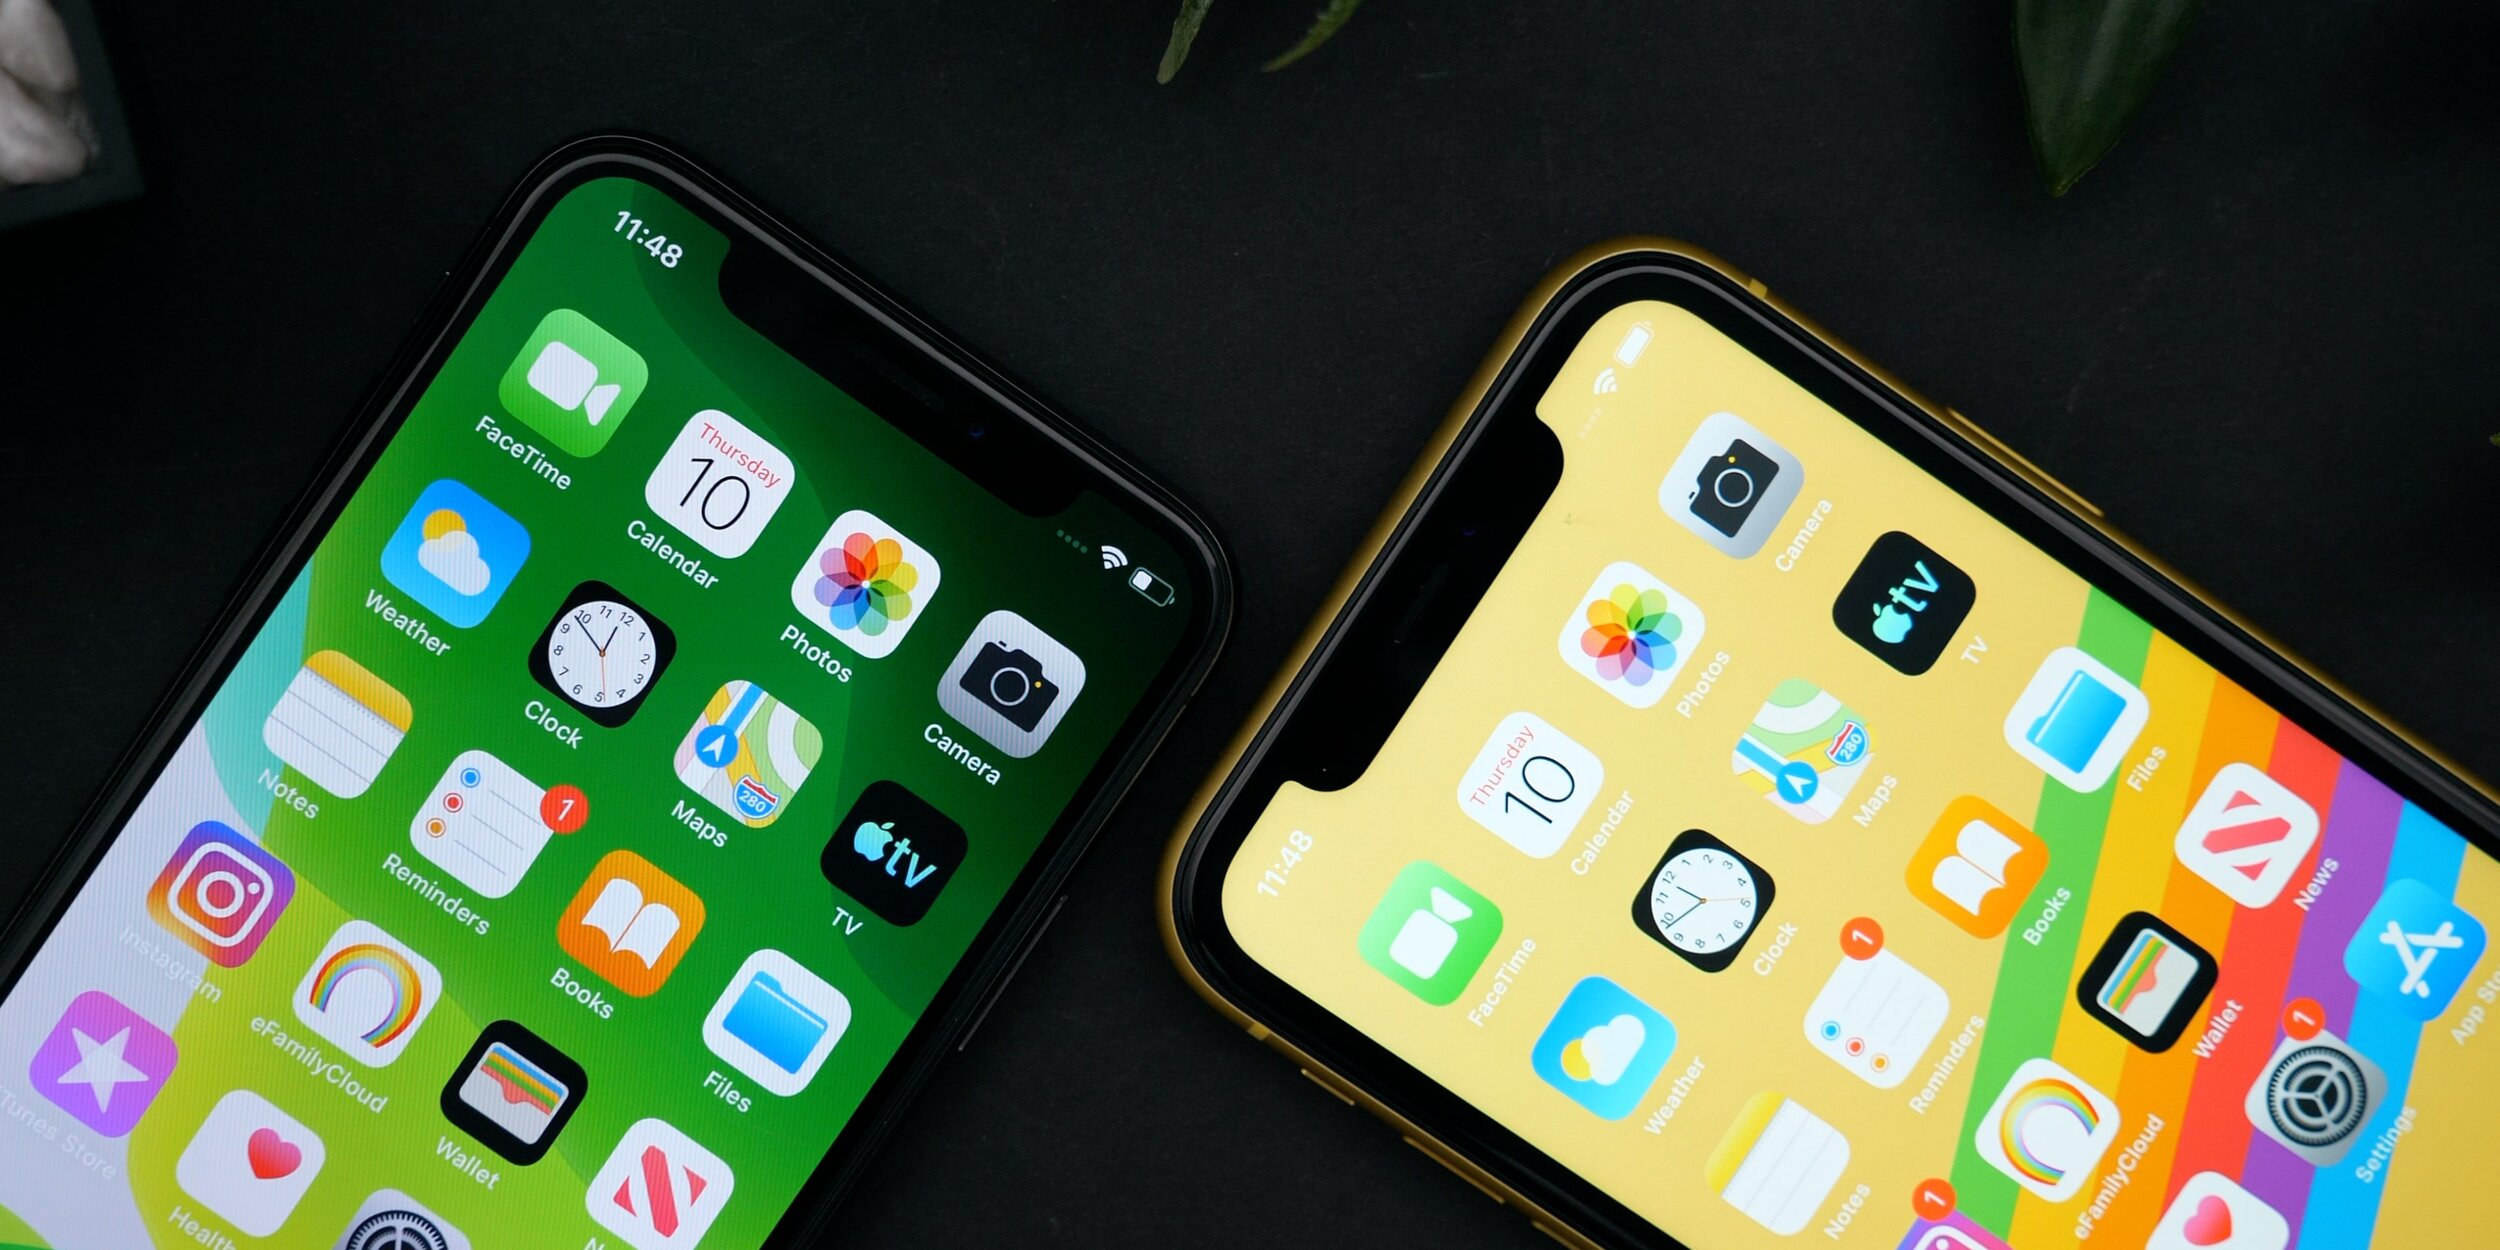 Despite being the more recent model, the 11 (Right) has thicker bezels than the X (Left)